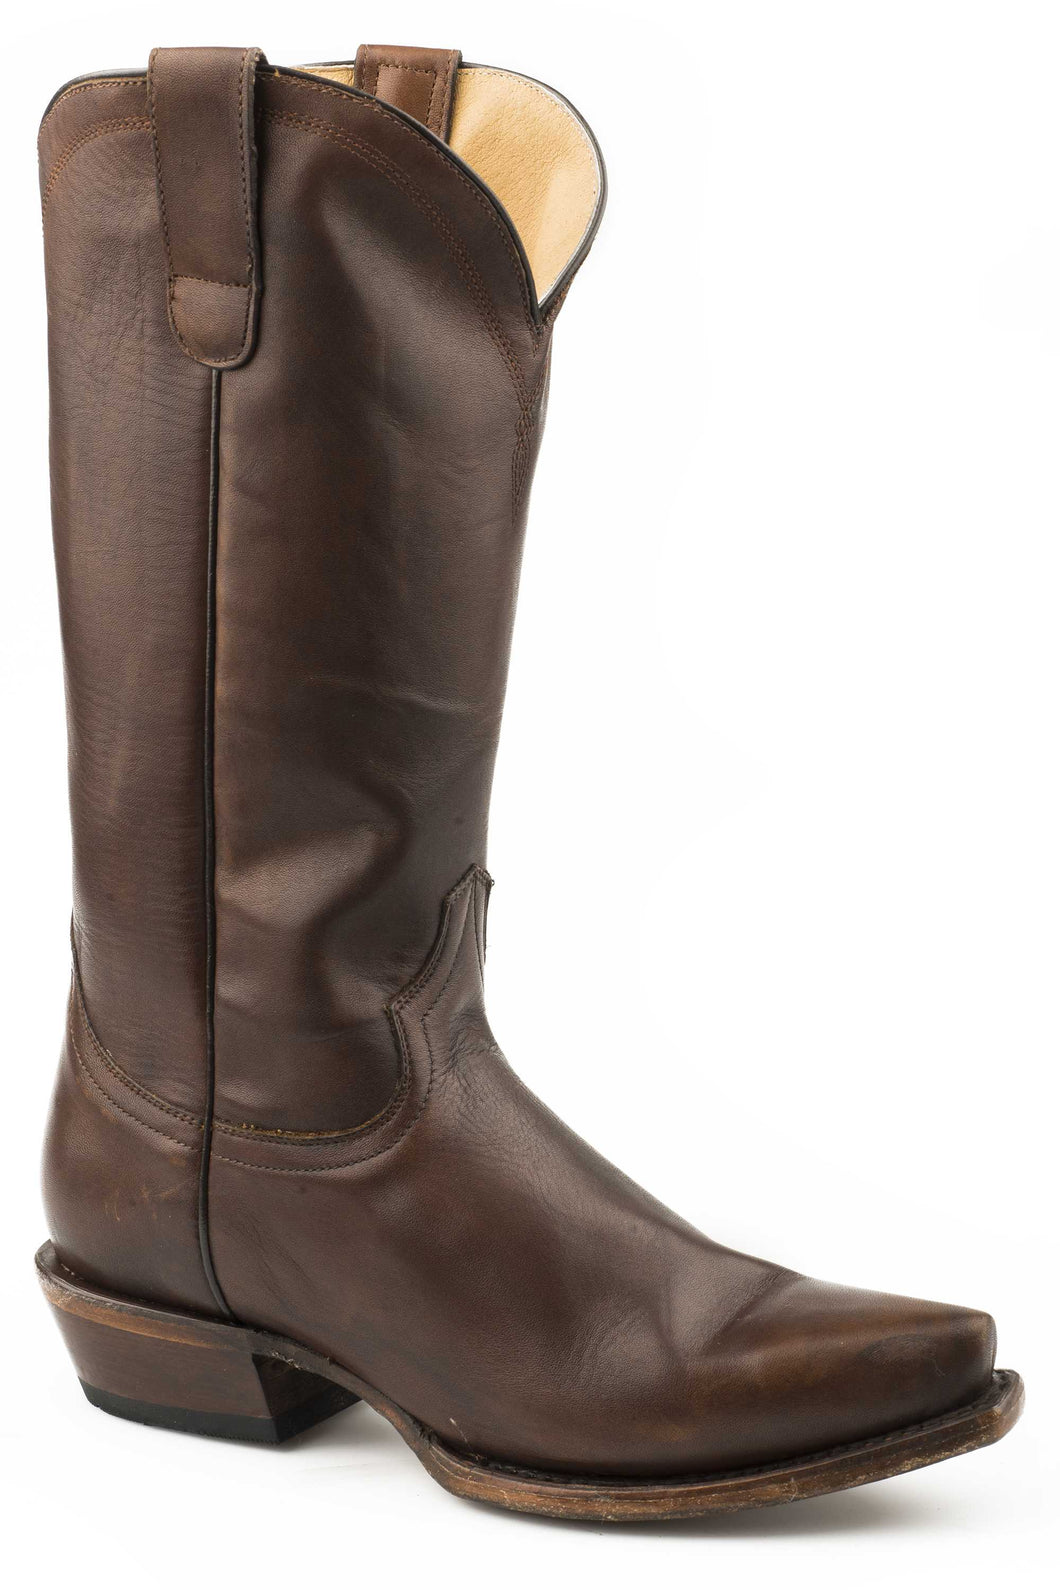 Plain Jane Boot Womens Boots Brush Off Brown Vam Shaft